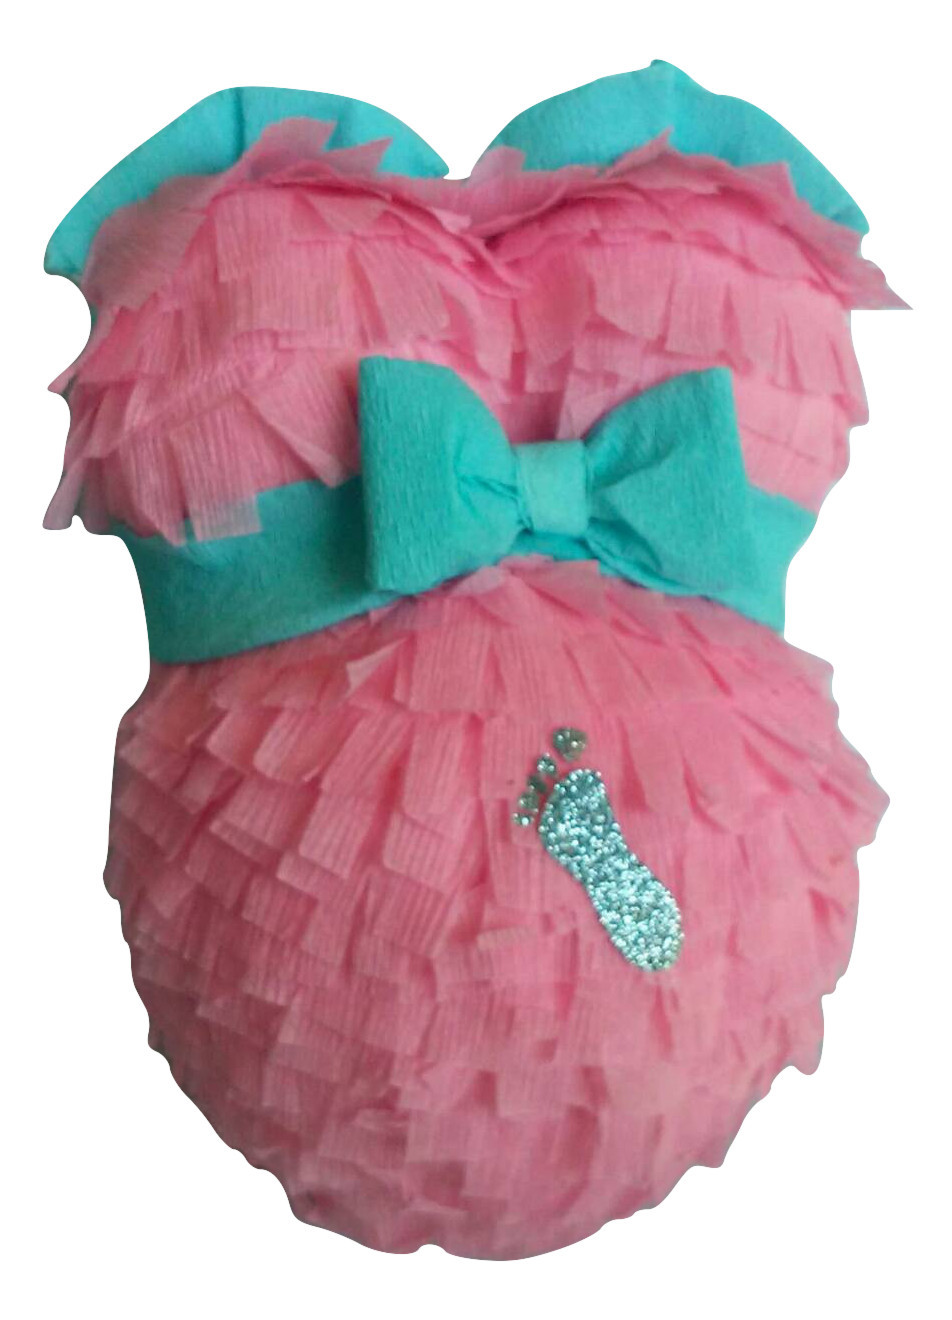 Cute Pregnant Belly Pinata For Baby Shower, Gender Reveal Shower